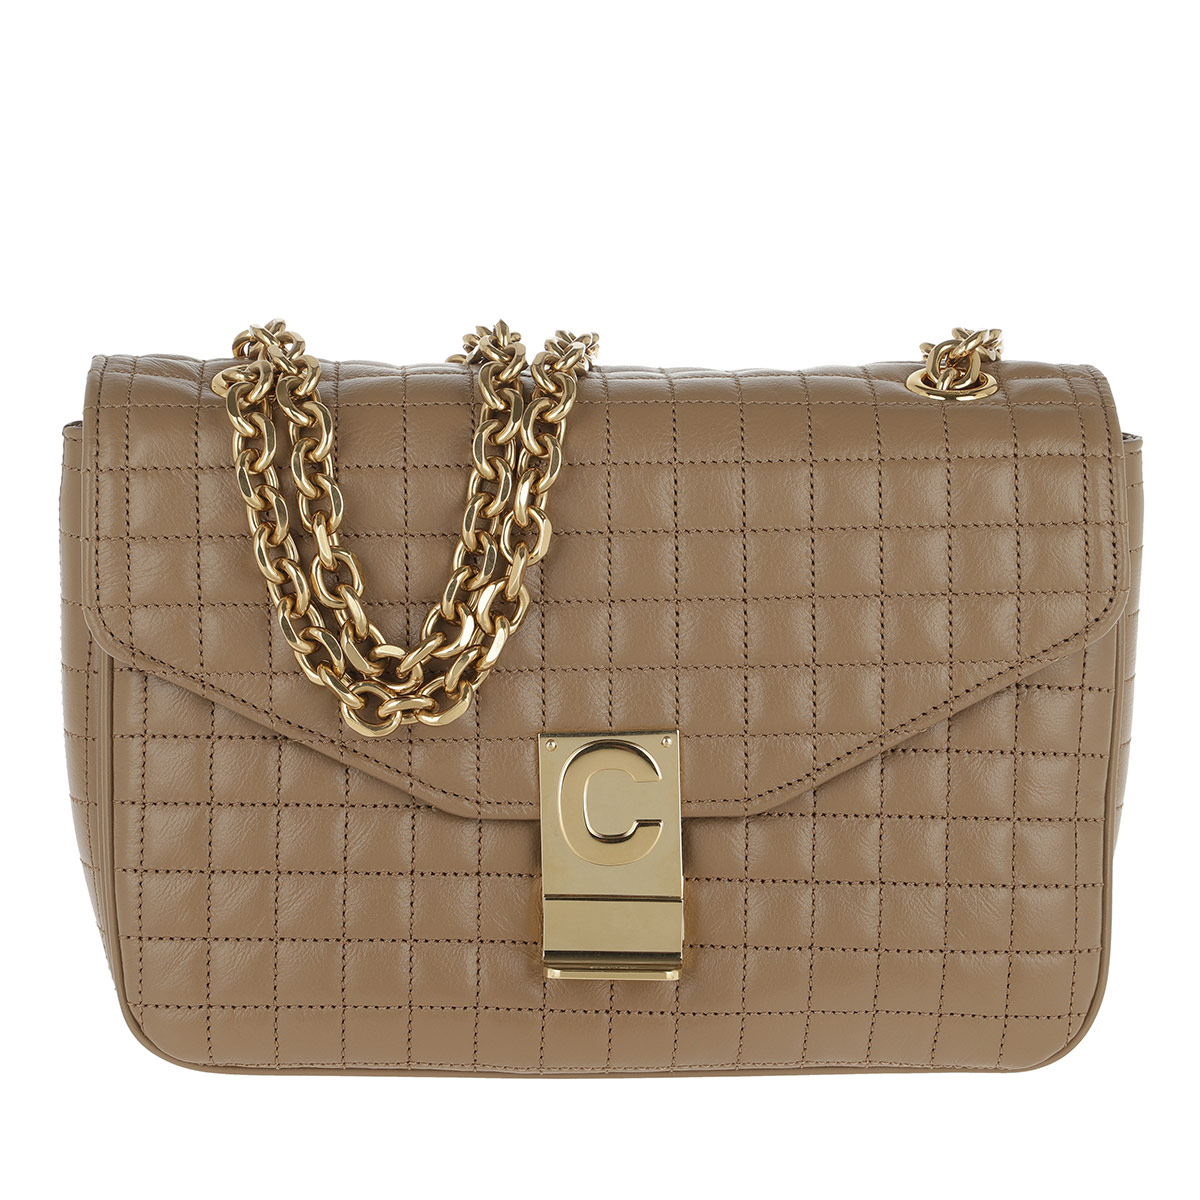 Celine Umhängetasche - C Bag Medium Quilted Calfskin Light Camel - in braun - für Damen